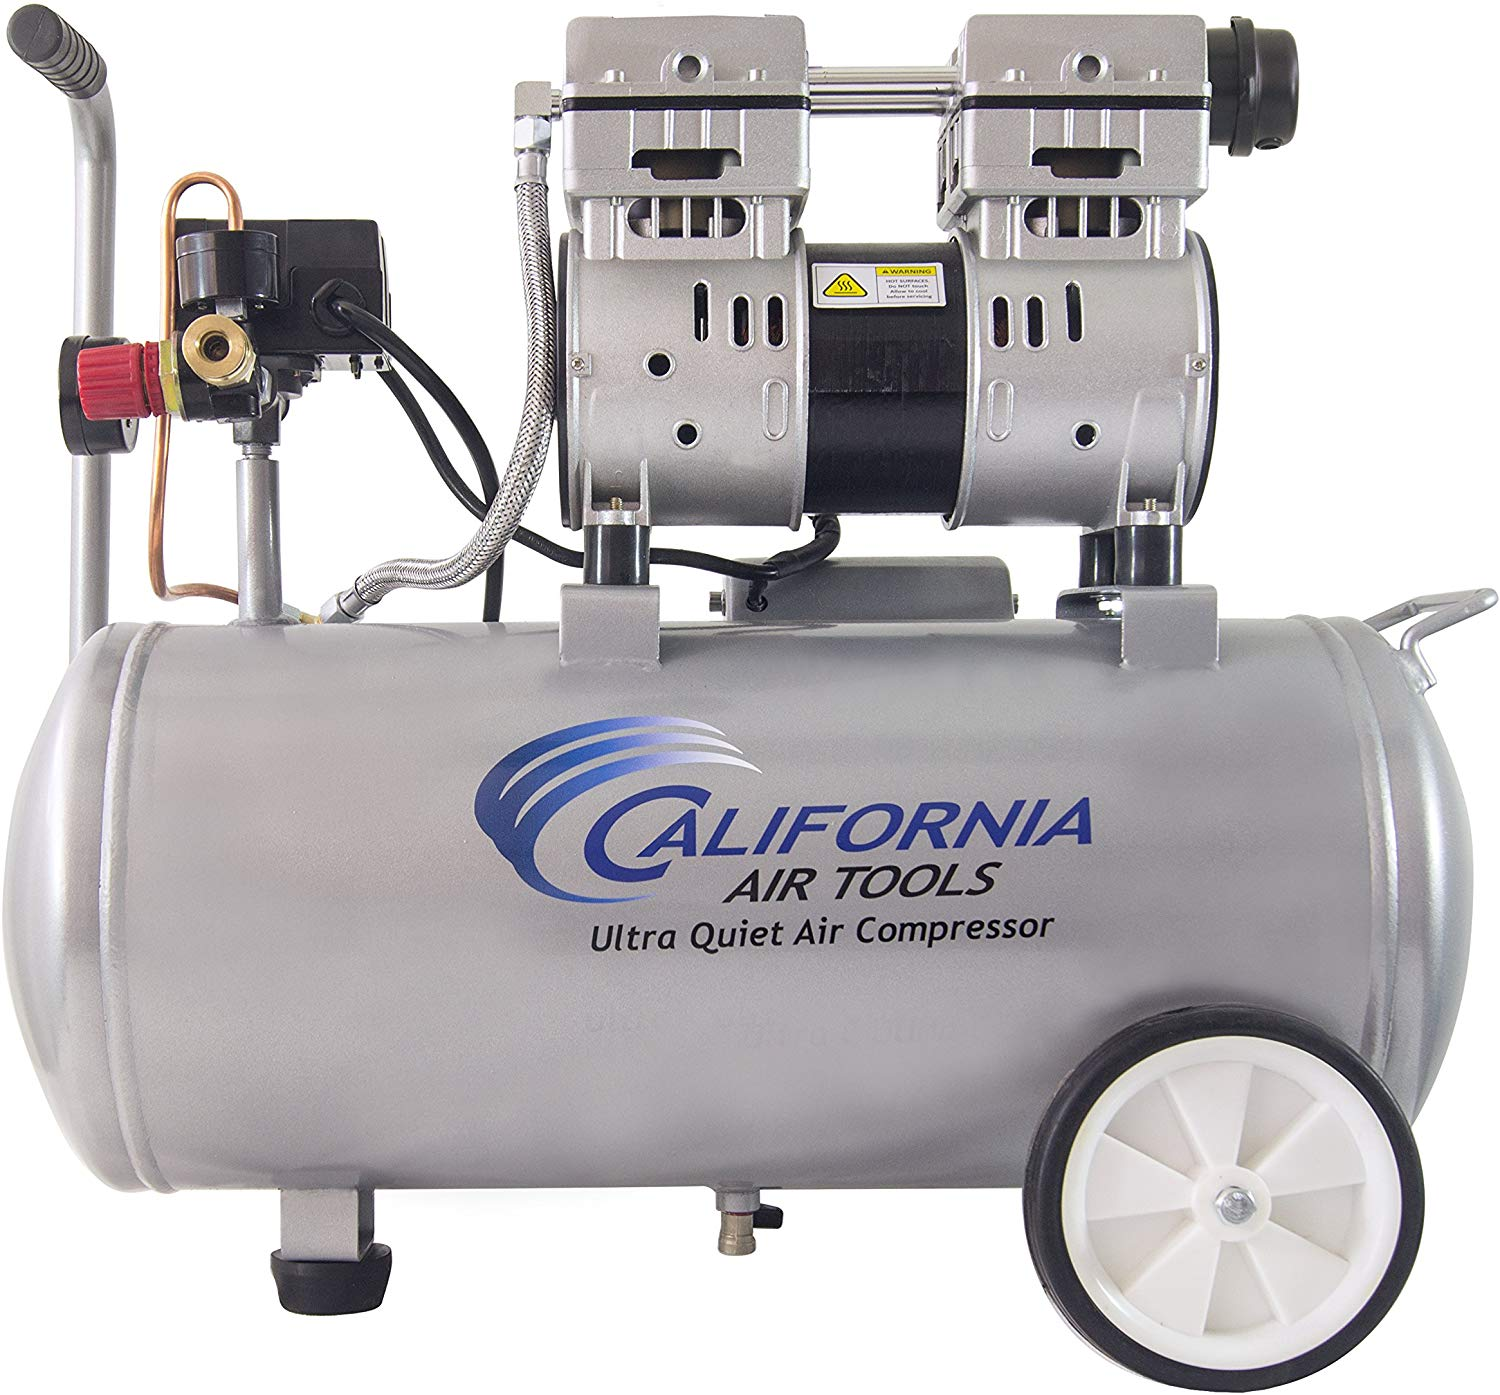 California Air Tools 8010 Ultra Quiet Air Compressor